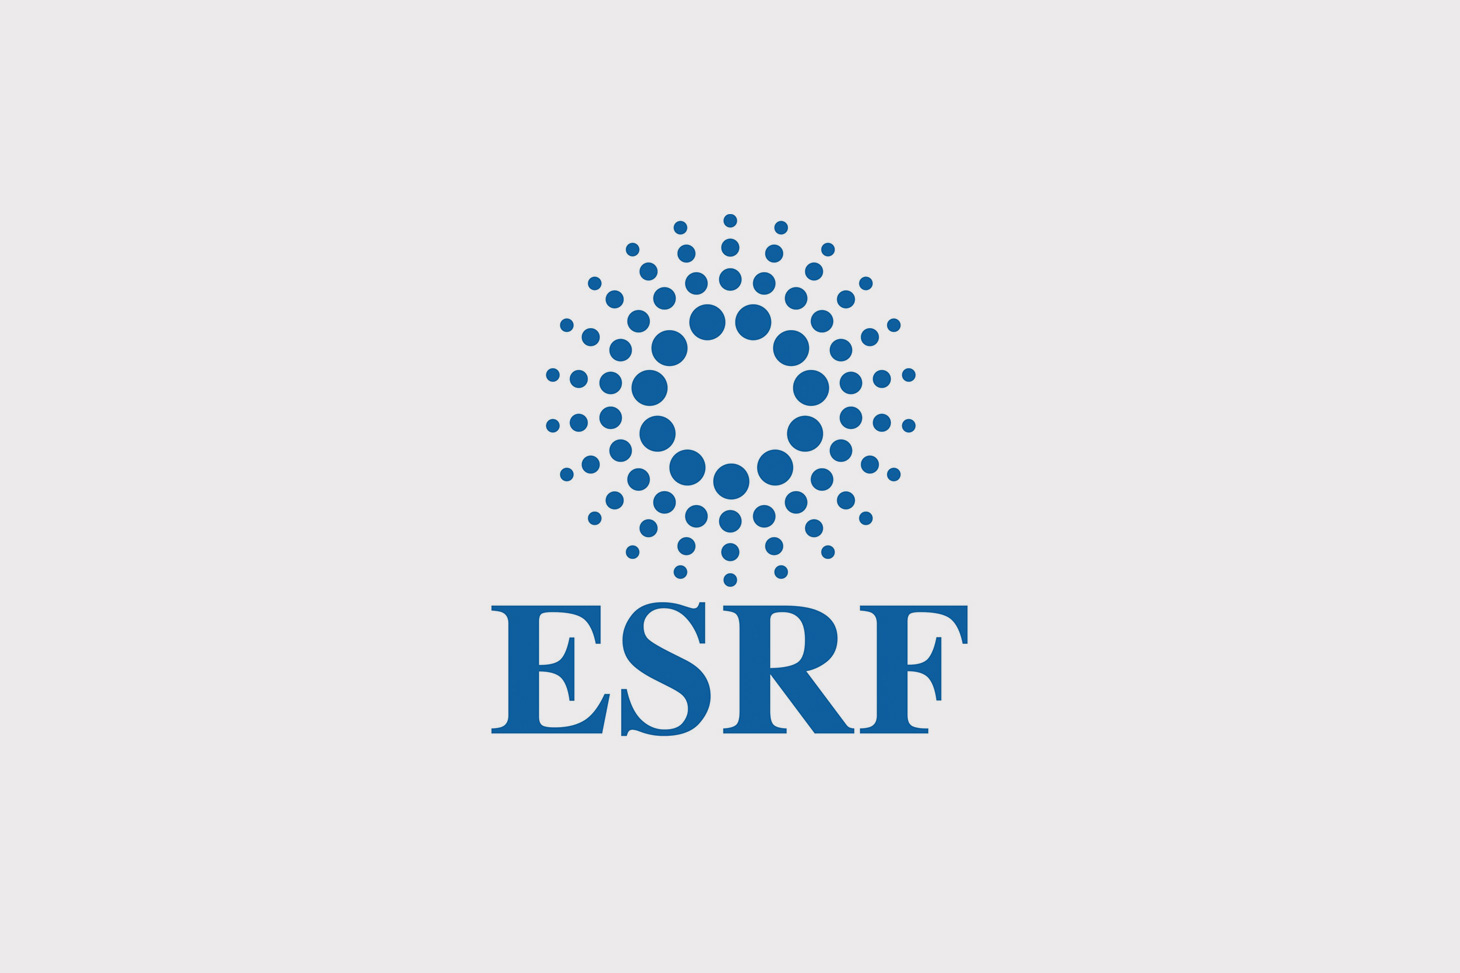 Logo European synchrotron radiation facility (ESRF)